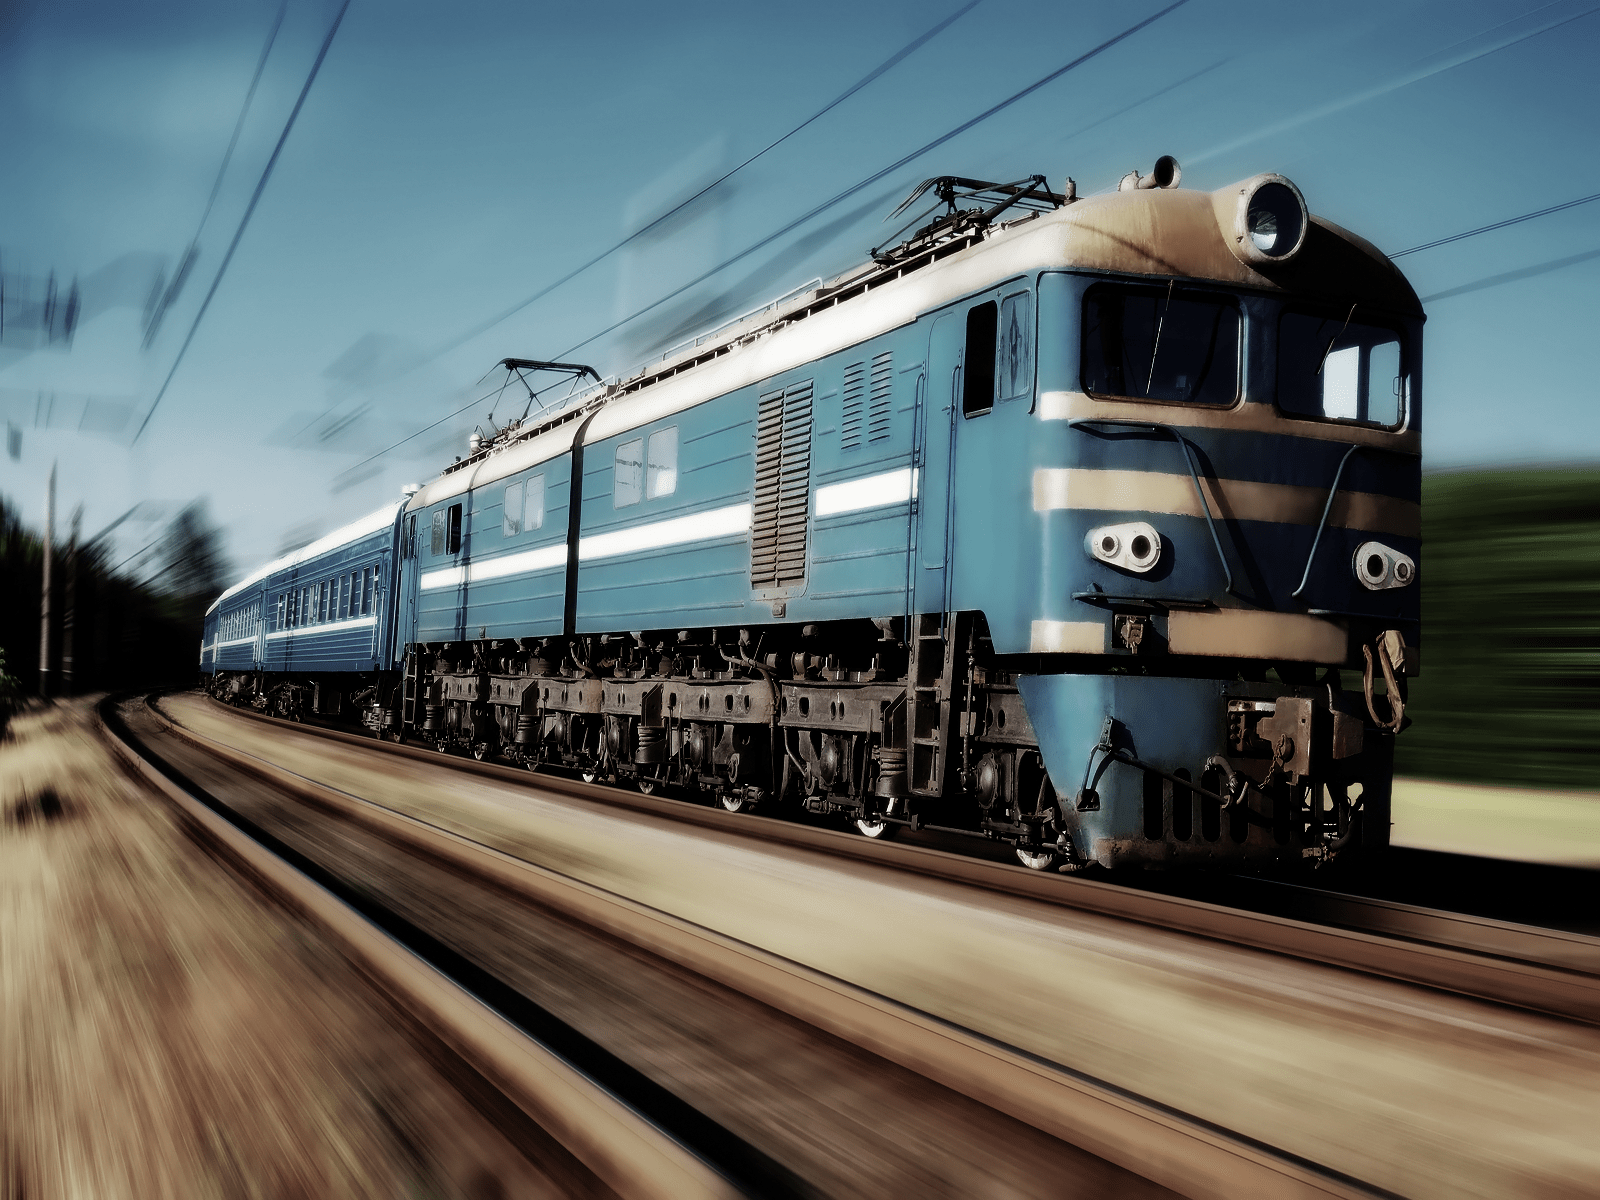 Windows 10 3d Wallpapers Moving Png Hd Train Transparent Hd Train Png Images Pluspng